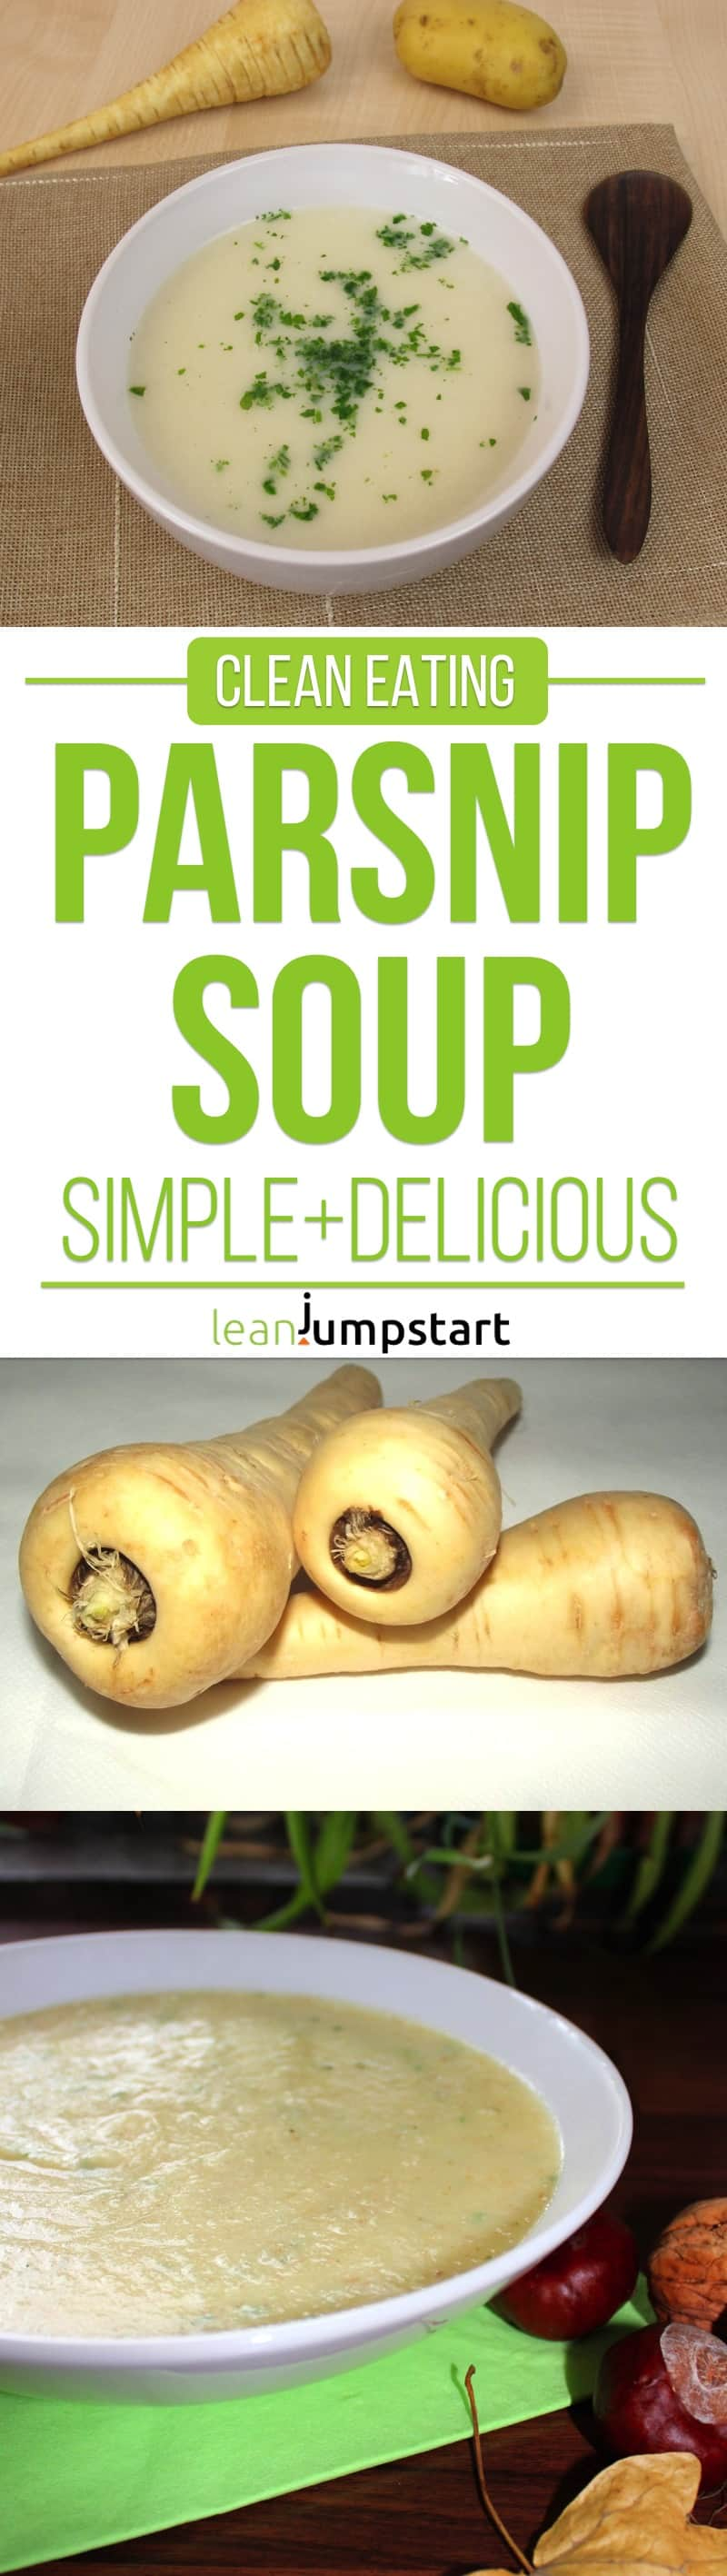 parsnip soup recipe: clean, easy and filling